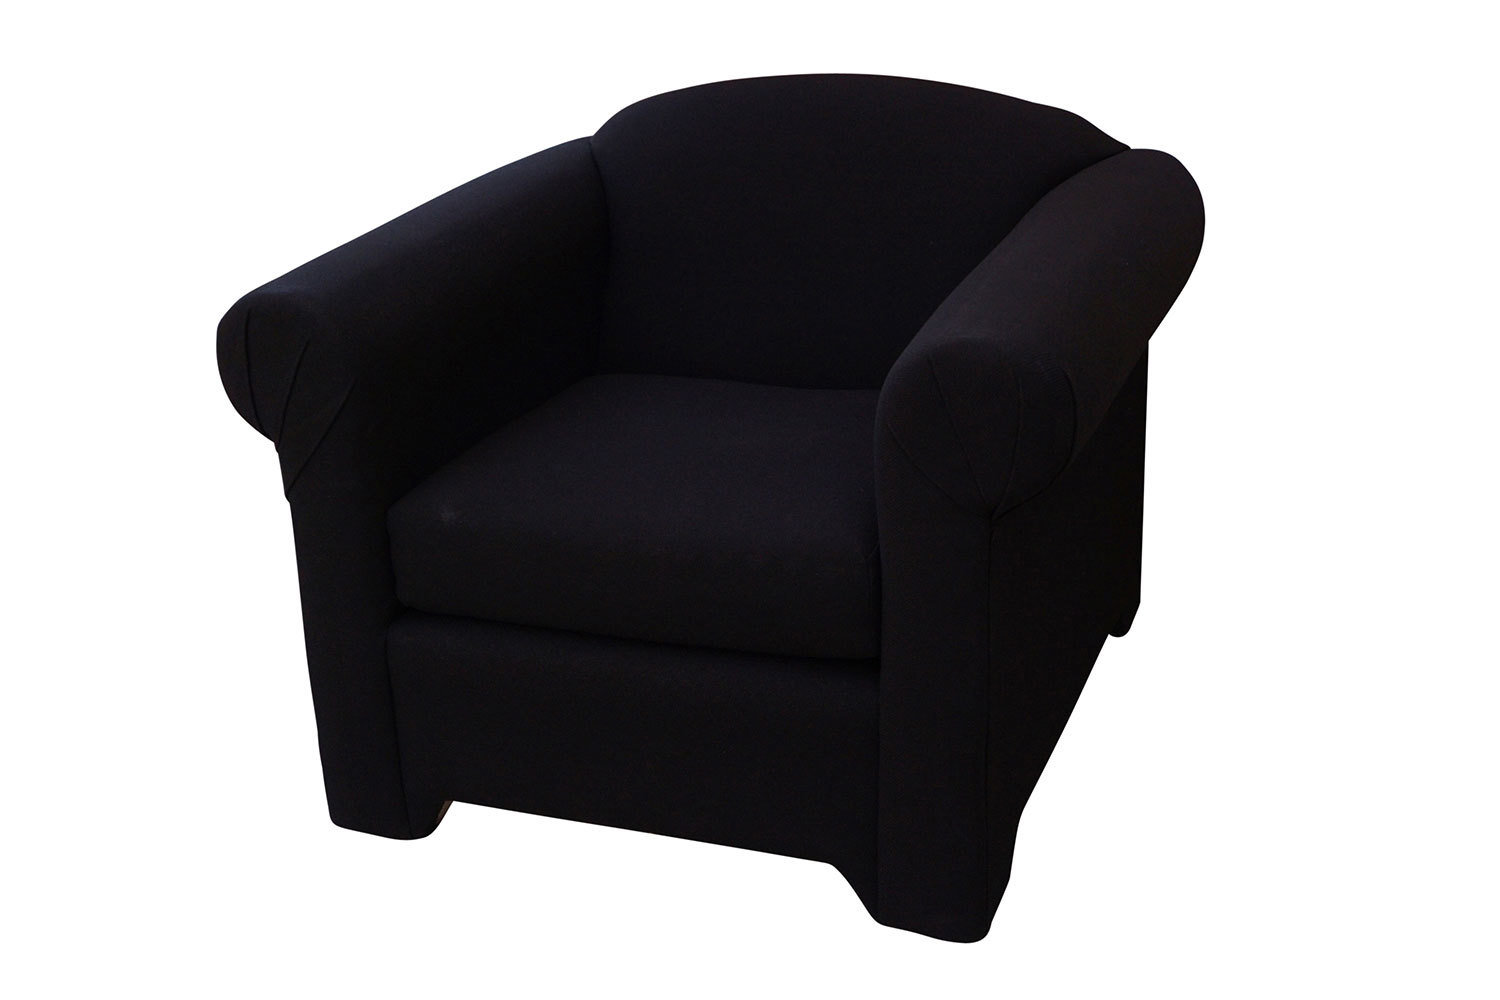 Black Fabric Chair